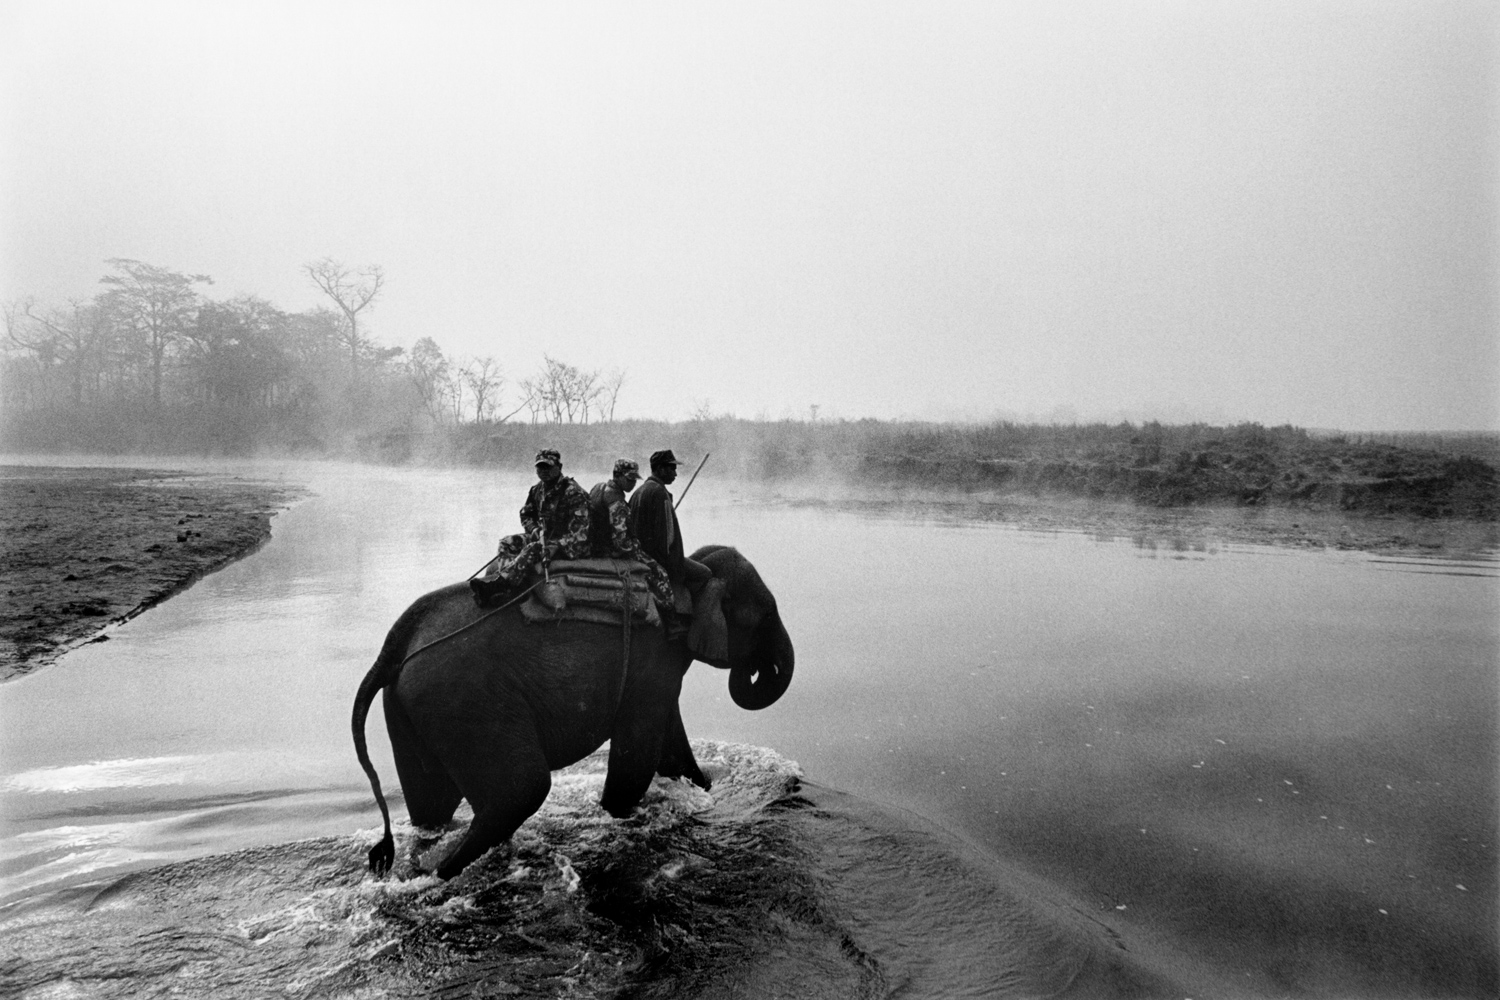 Nepal                                                                                             A small group of Royal Nepalese soldiers riding elephants patrol Chitwan National Park at dawn.